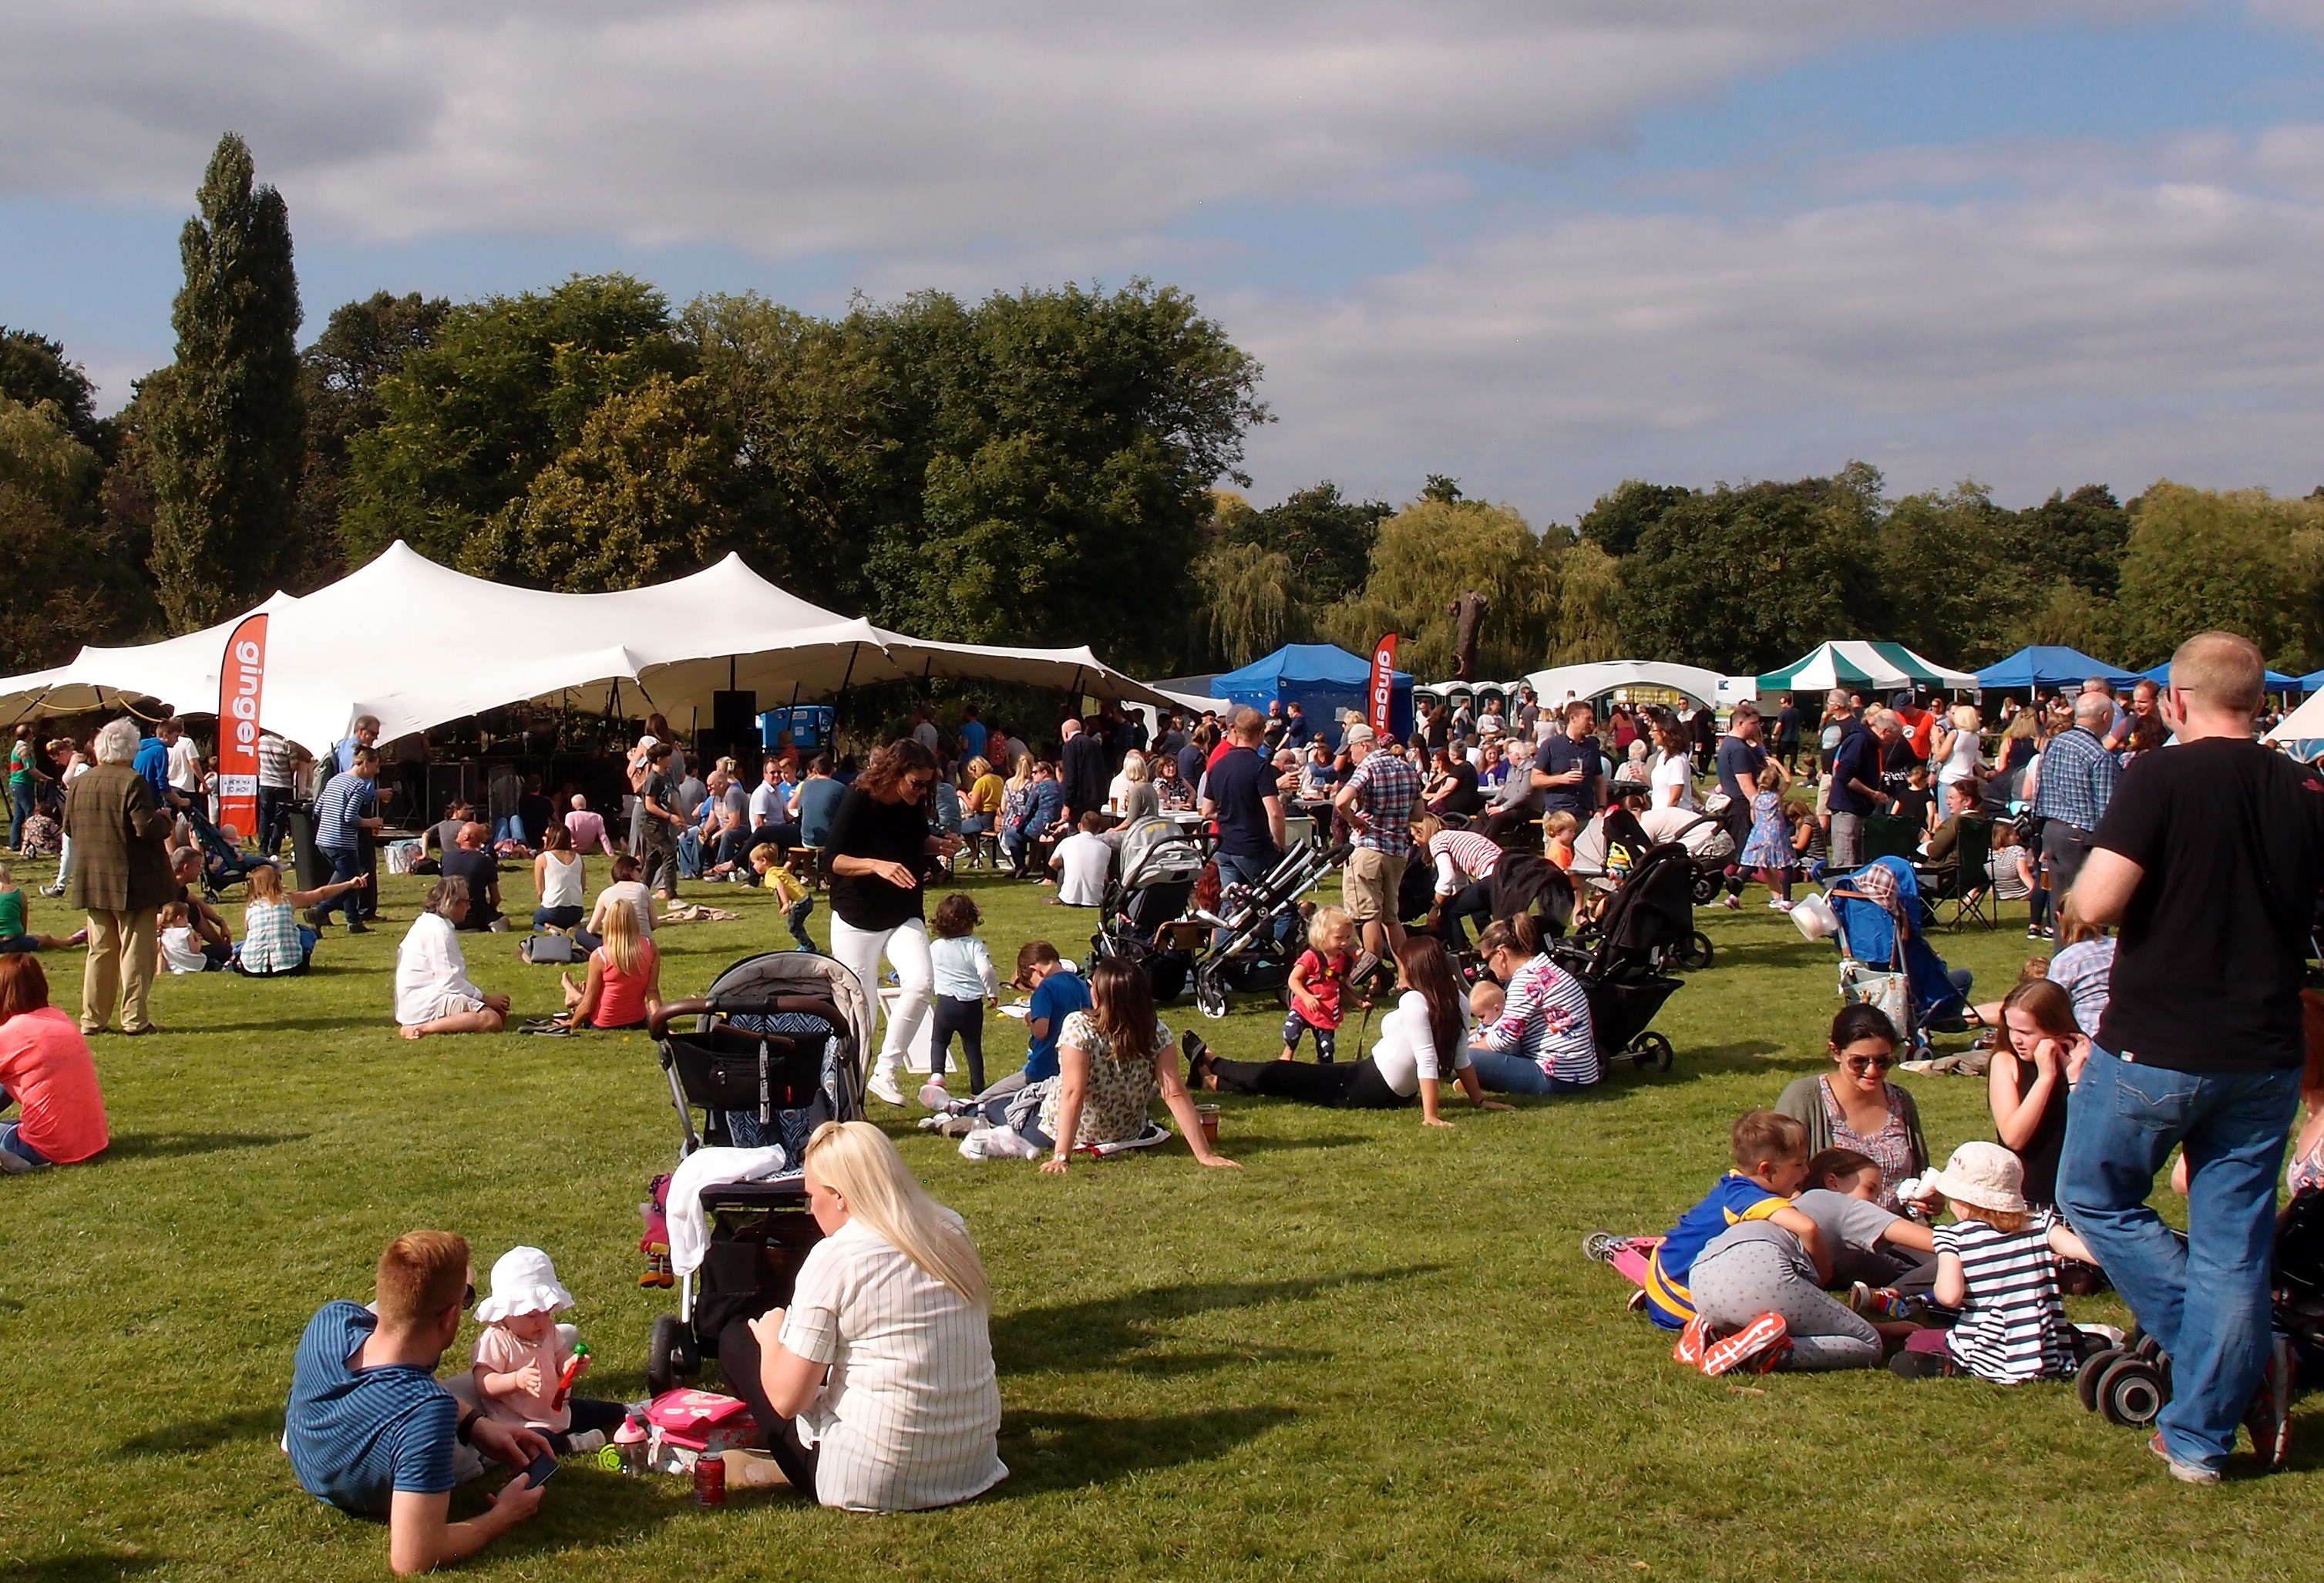 Kenilworth Arts Festival launches crowdfunding drive for 2017